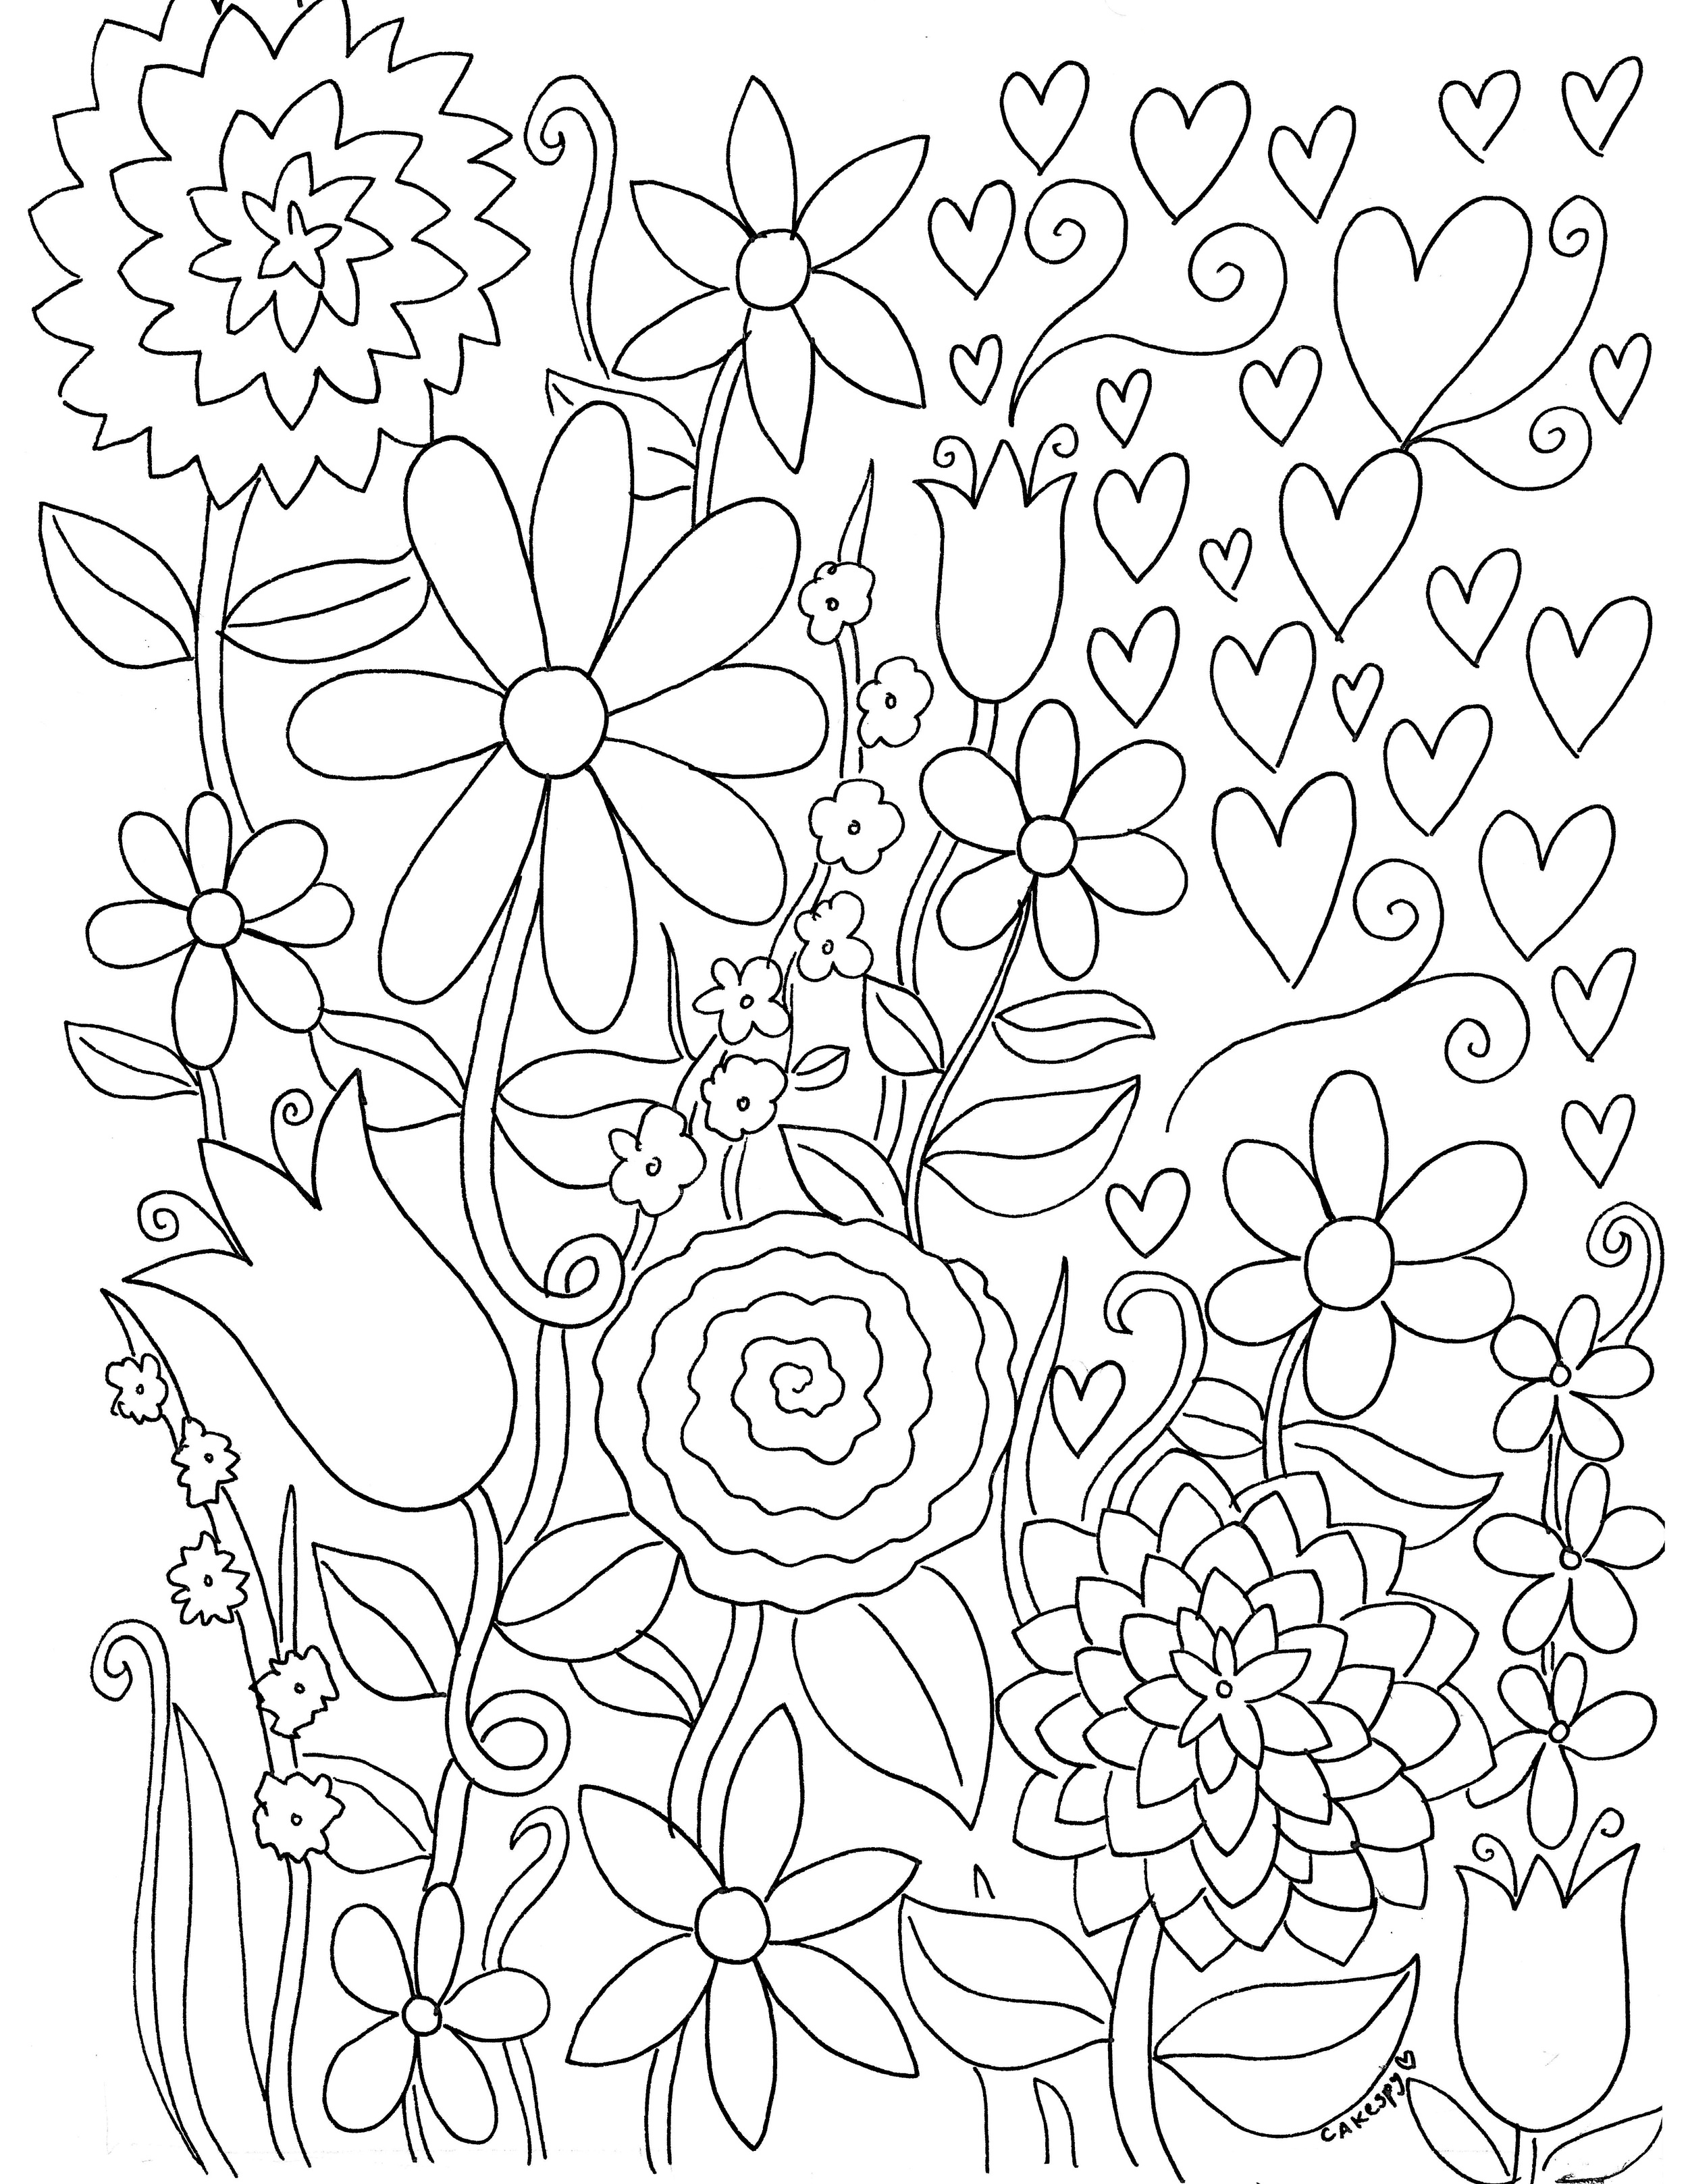 Free download: coloring book pages! Find them by clicking